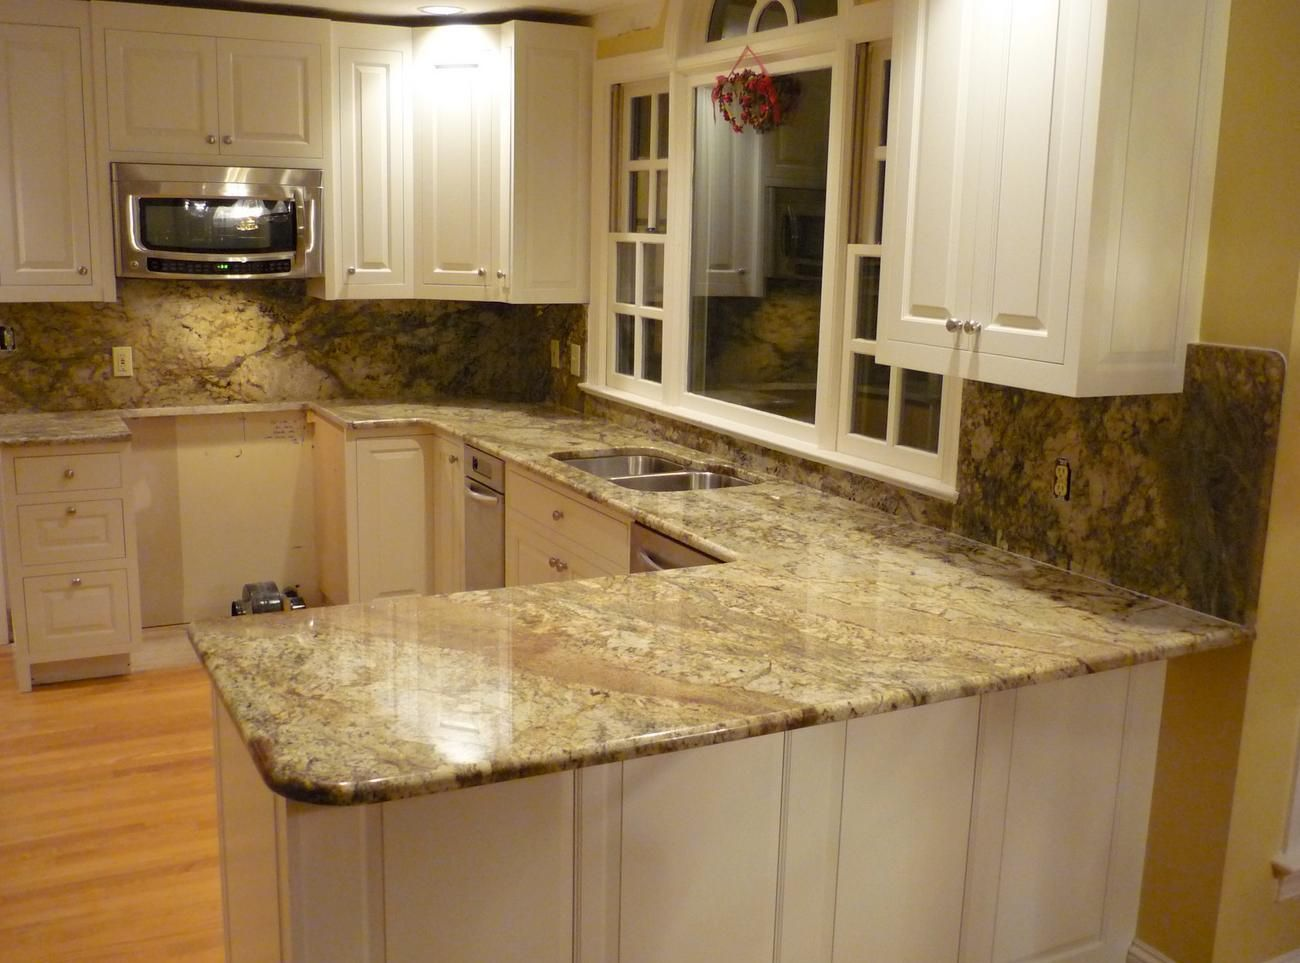 pictures affordablec countertop of sale options prefab fake block kitchen best for surfaces types island size wood countertops full top type laminate cost butcher granite lowes materials vanity from quartz kitchens stone ideas